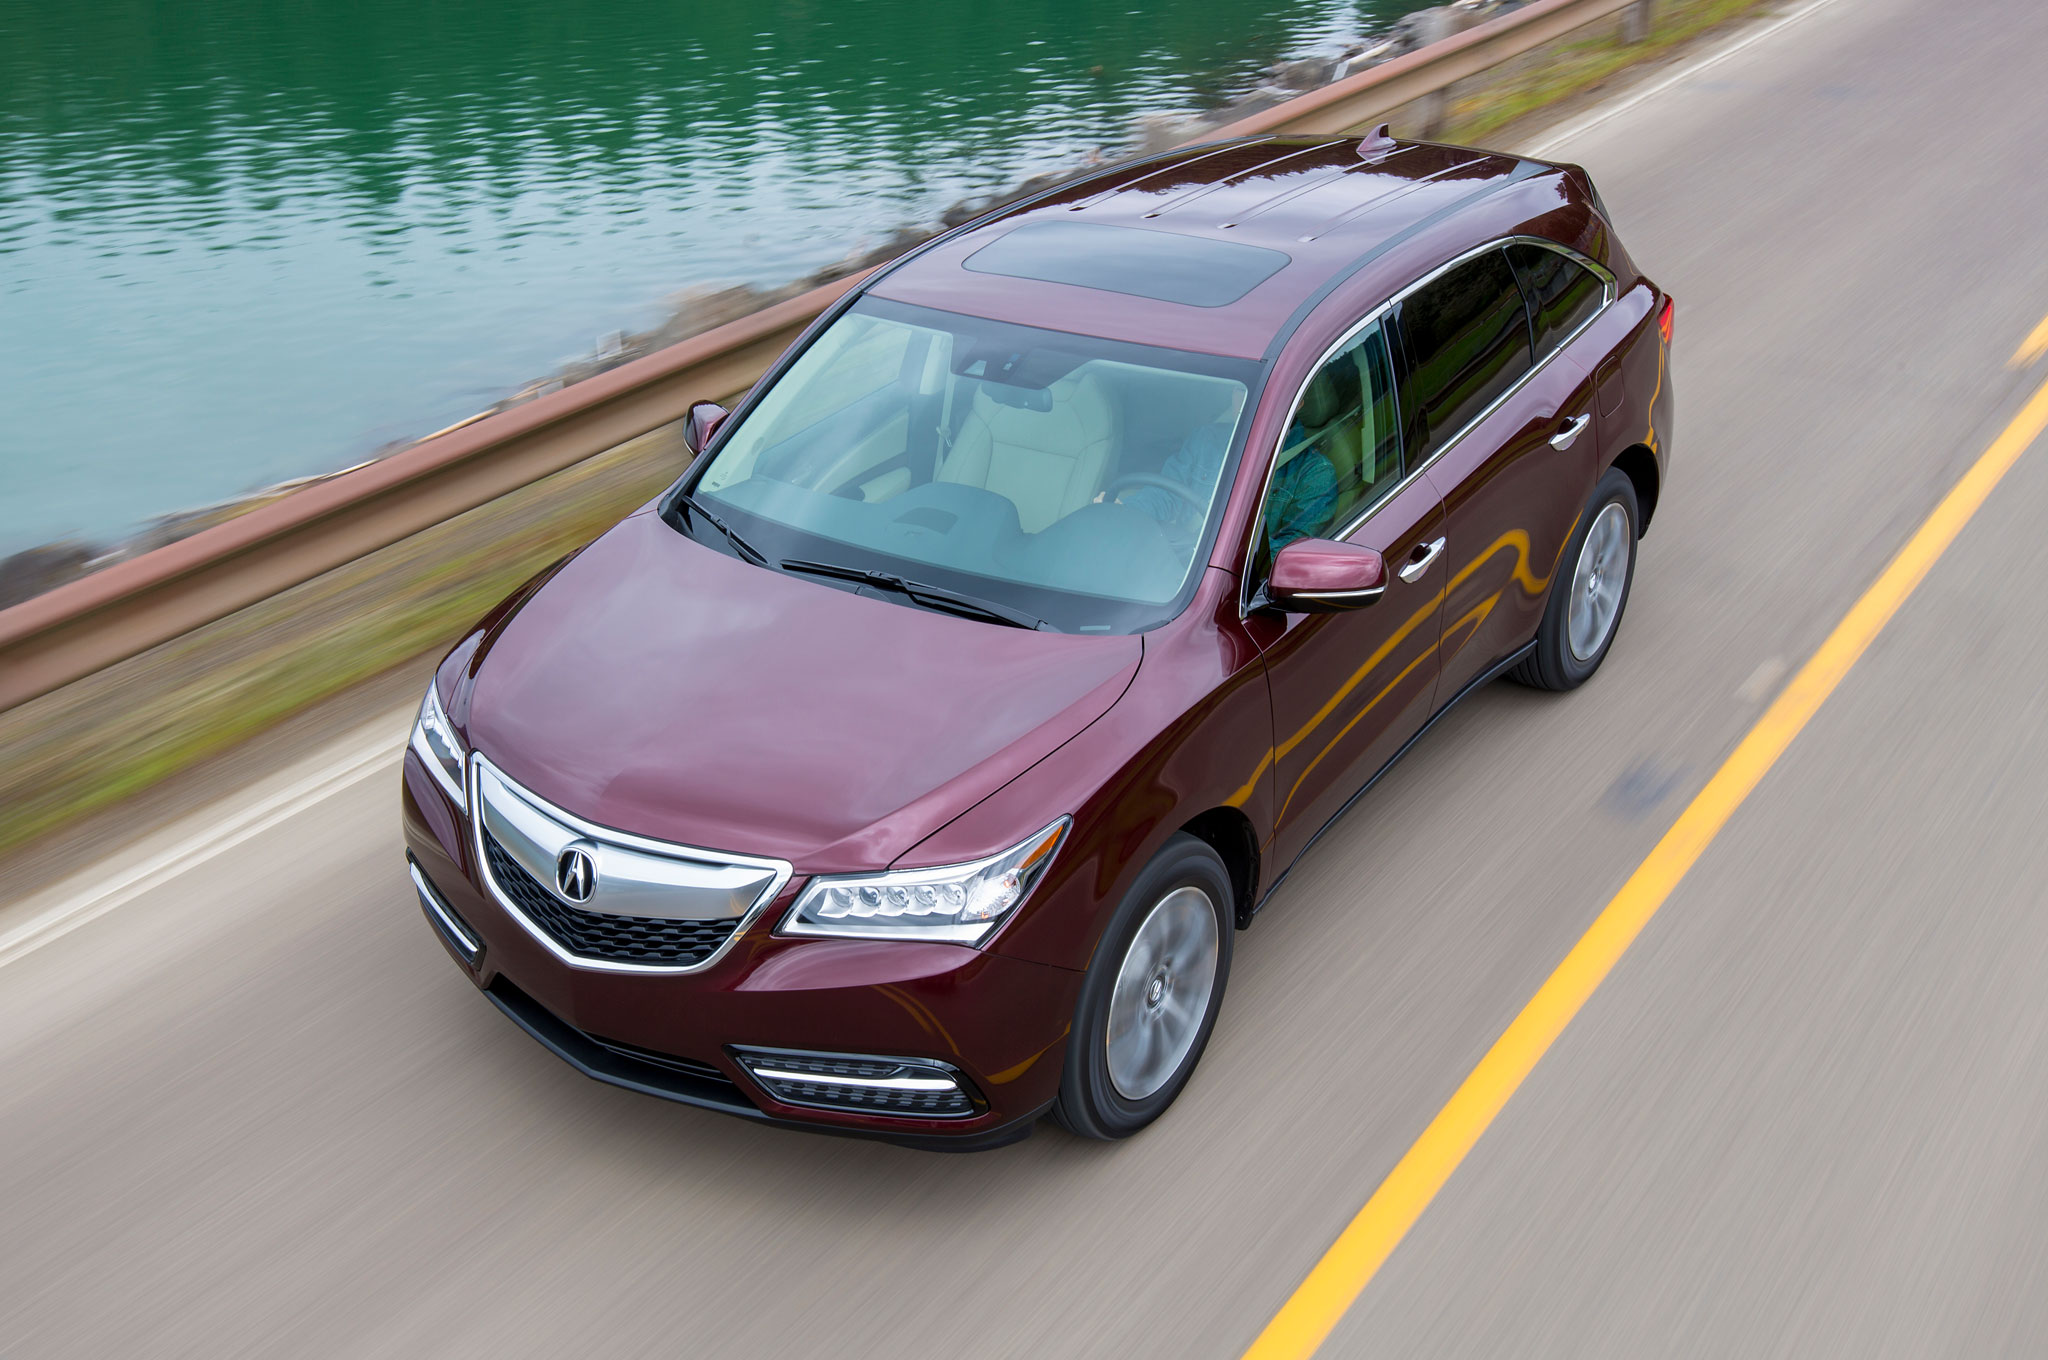 Acura MDX Updated With NineSpeed Automatic New Tech Features - 01 acura mdx transmission